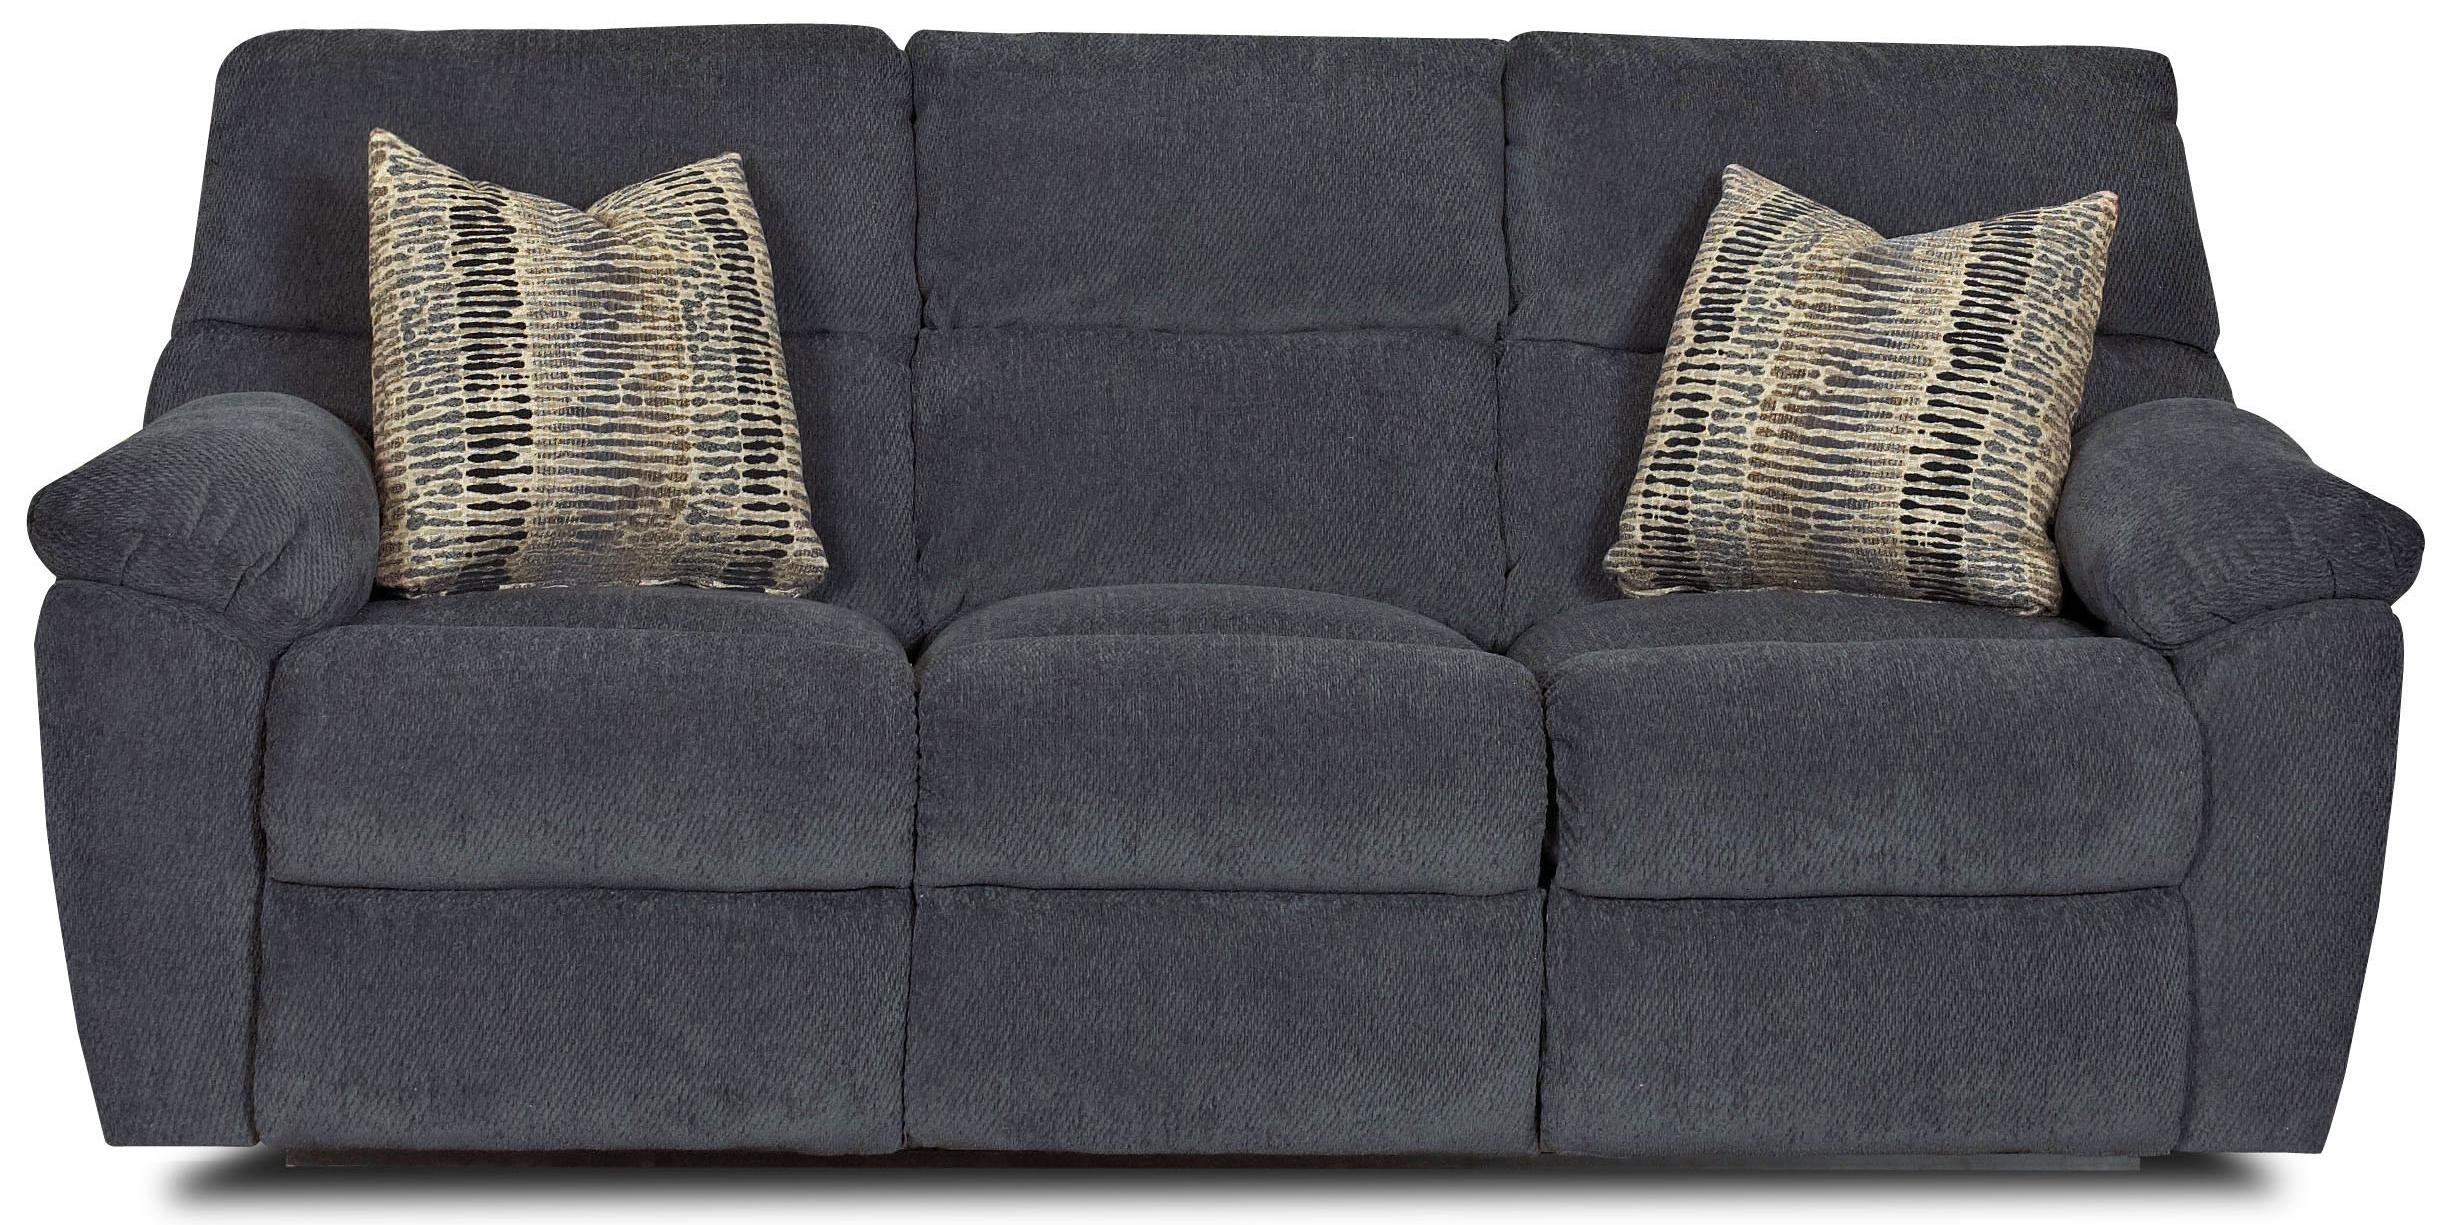 accent pillows for sofa cheap modern sleeper seattle casual reclining with pillow arms and